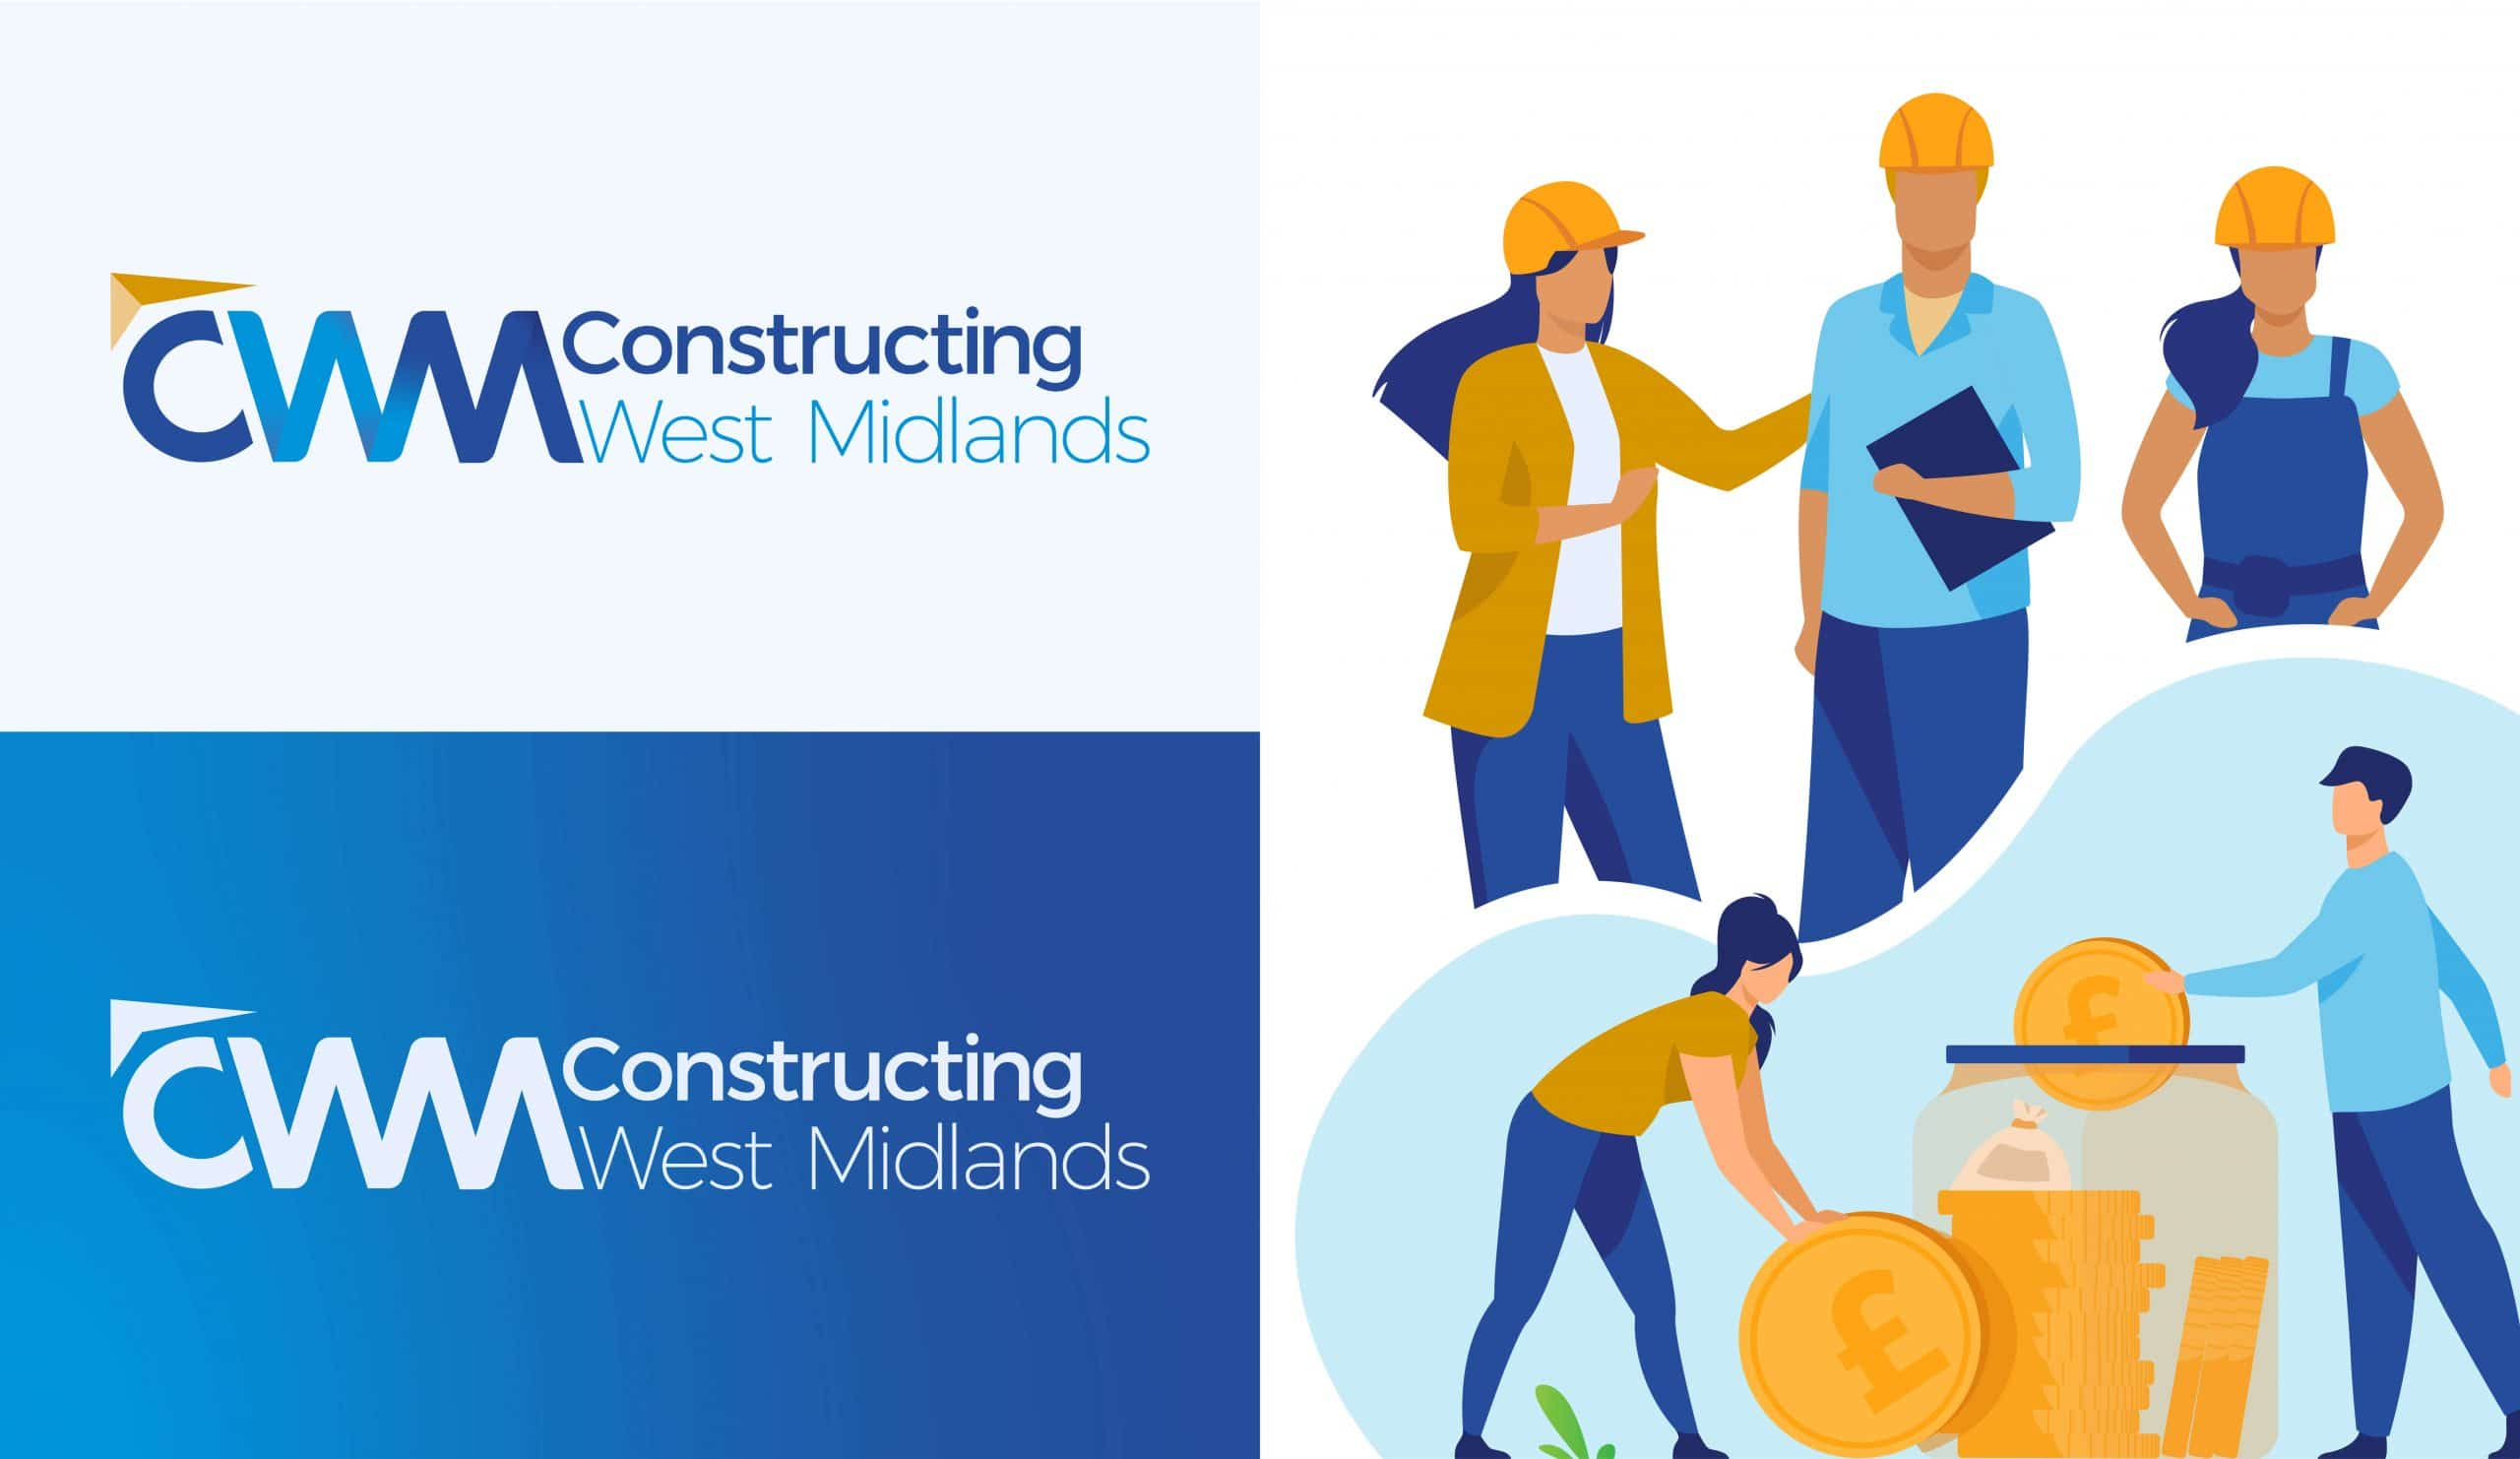 Constructing West Midlands Logo with illustrations